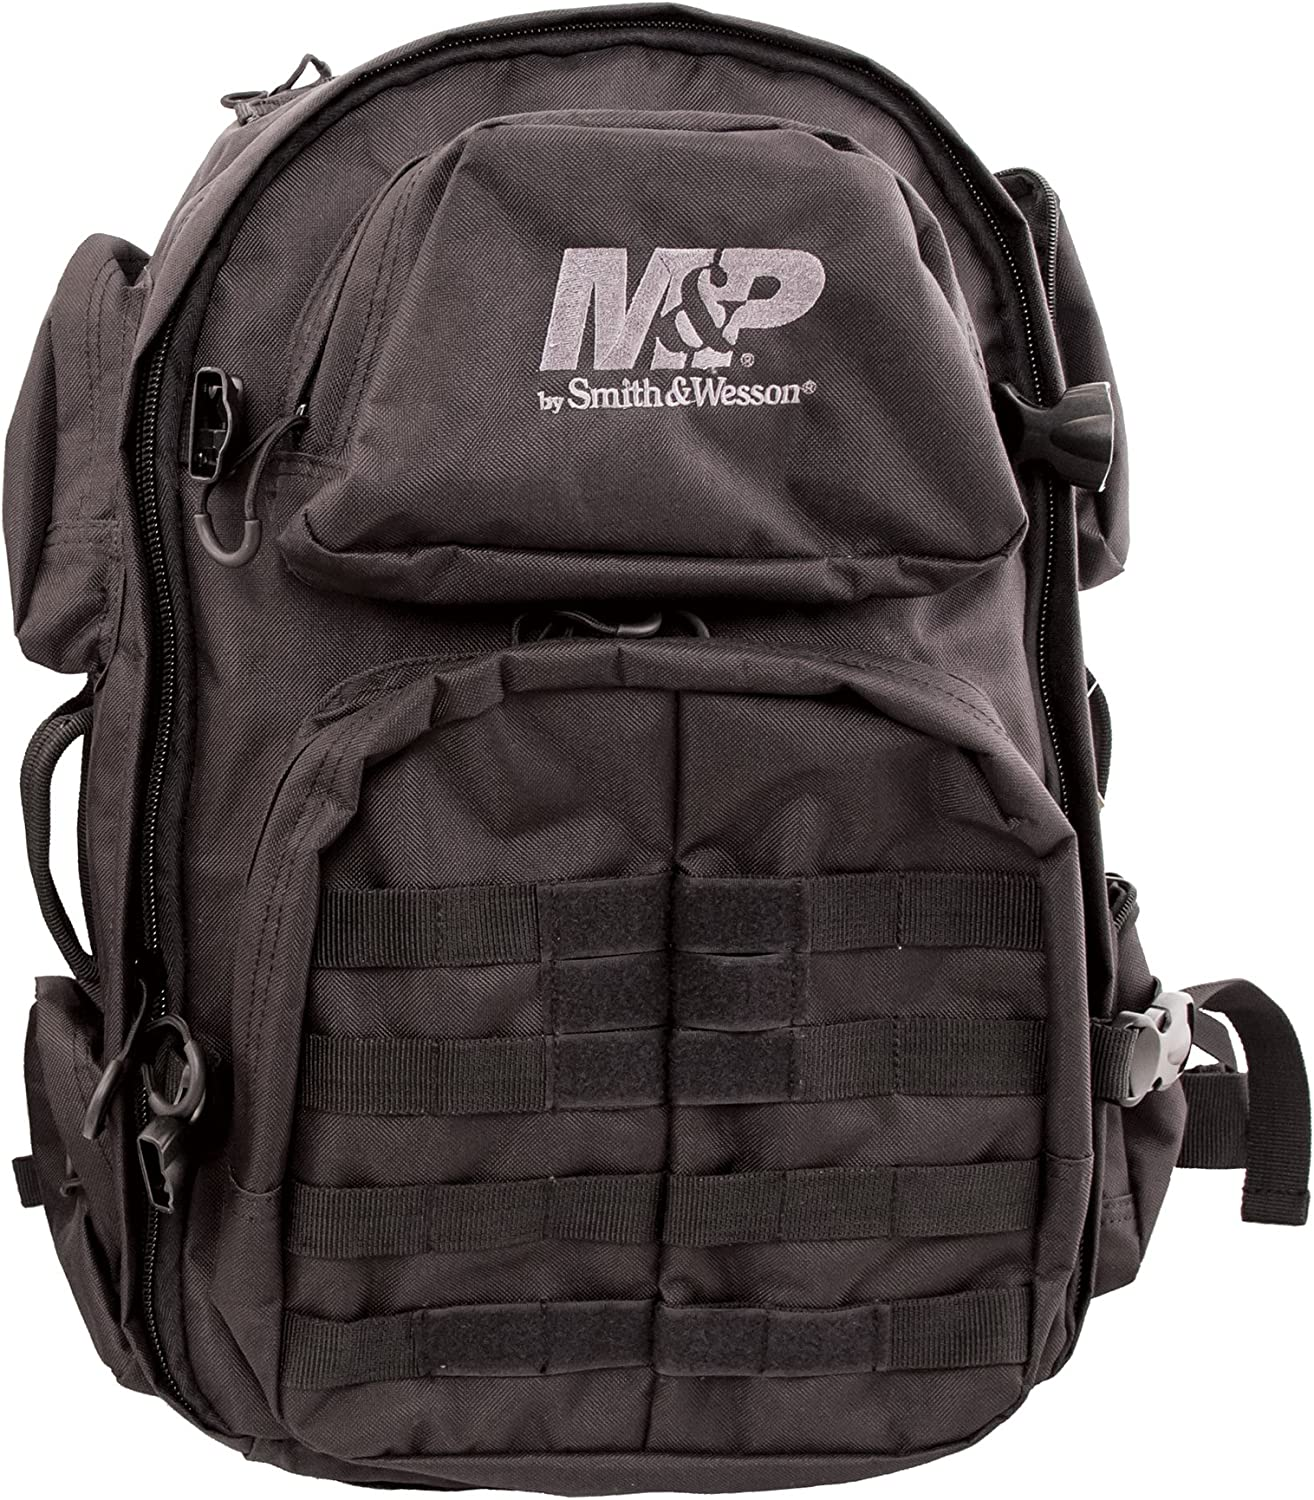 Smith Wesson M P Pro Tac Large Backpack with Weather Resistance, Ballistic Fabric Construction and MOLLE for Hunting, Range, Travel and Sport